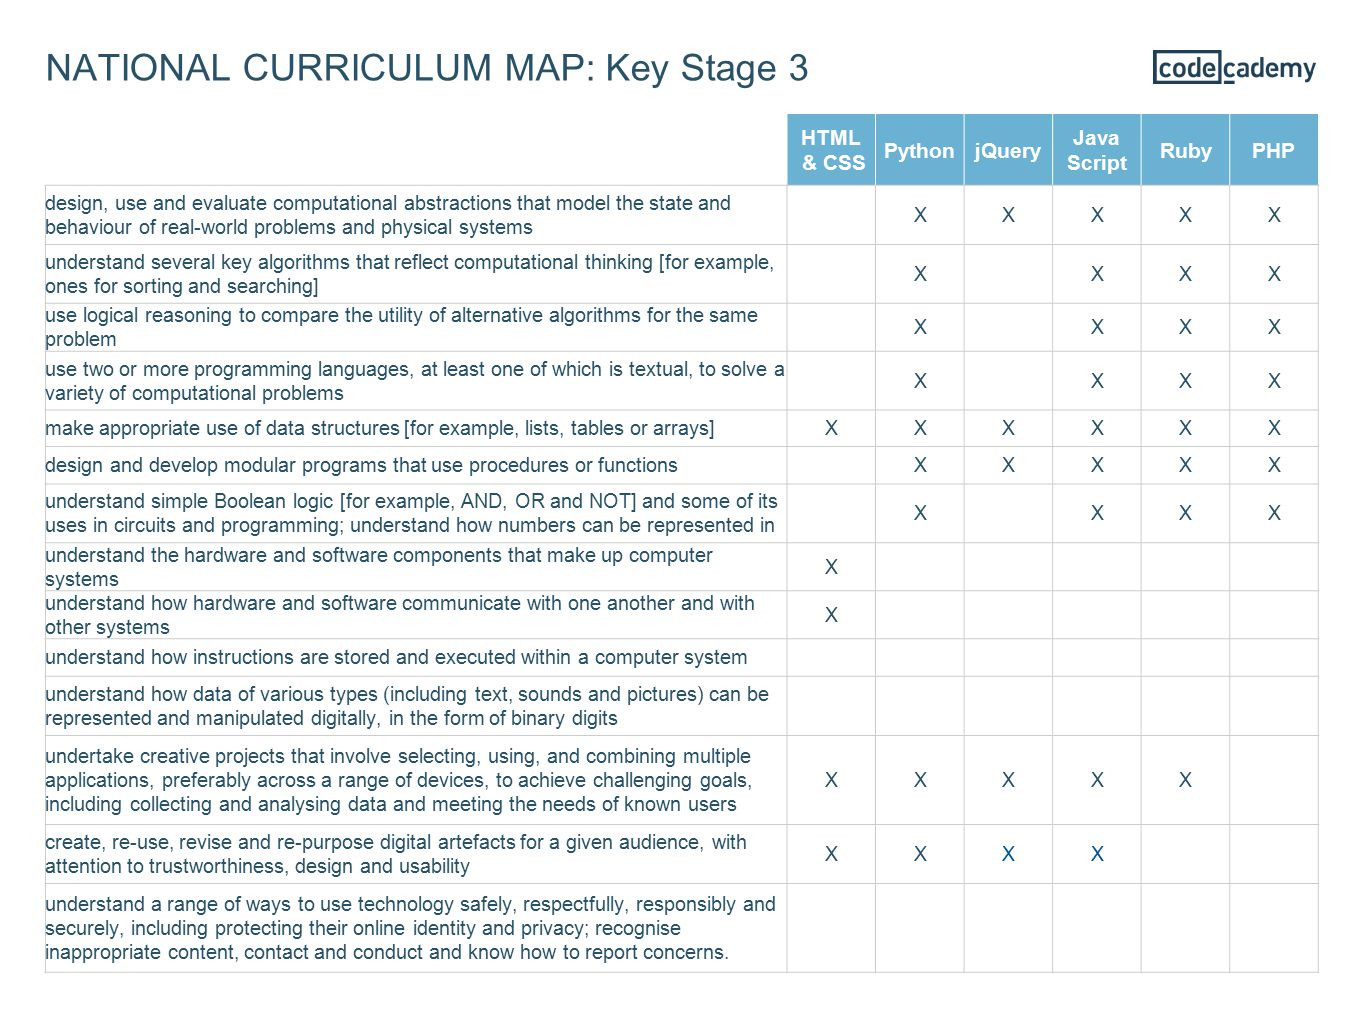 NATIONAL CURRICULUM MAP: Key Stage 3